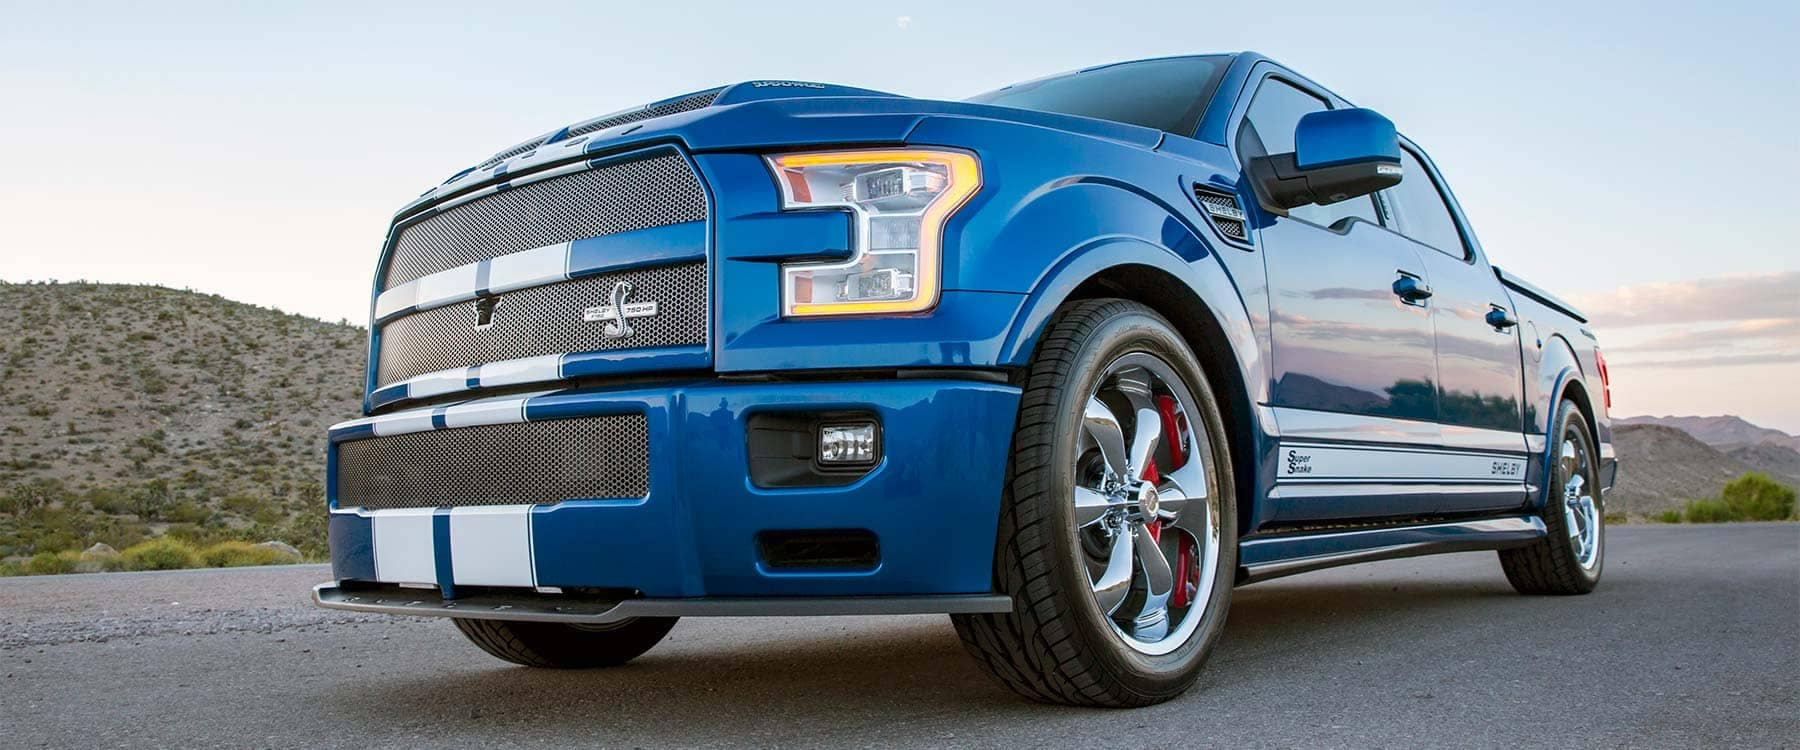 2018 Ford Tuscany Shelby Super Snake Slider